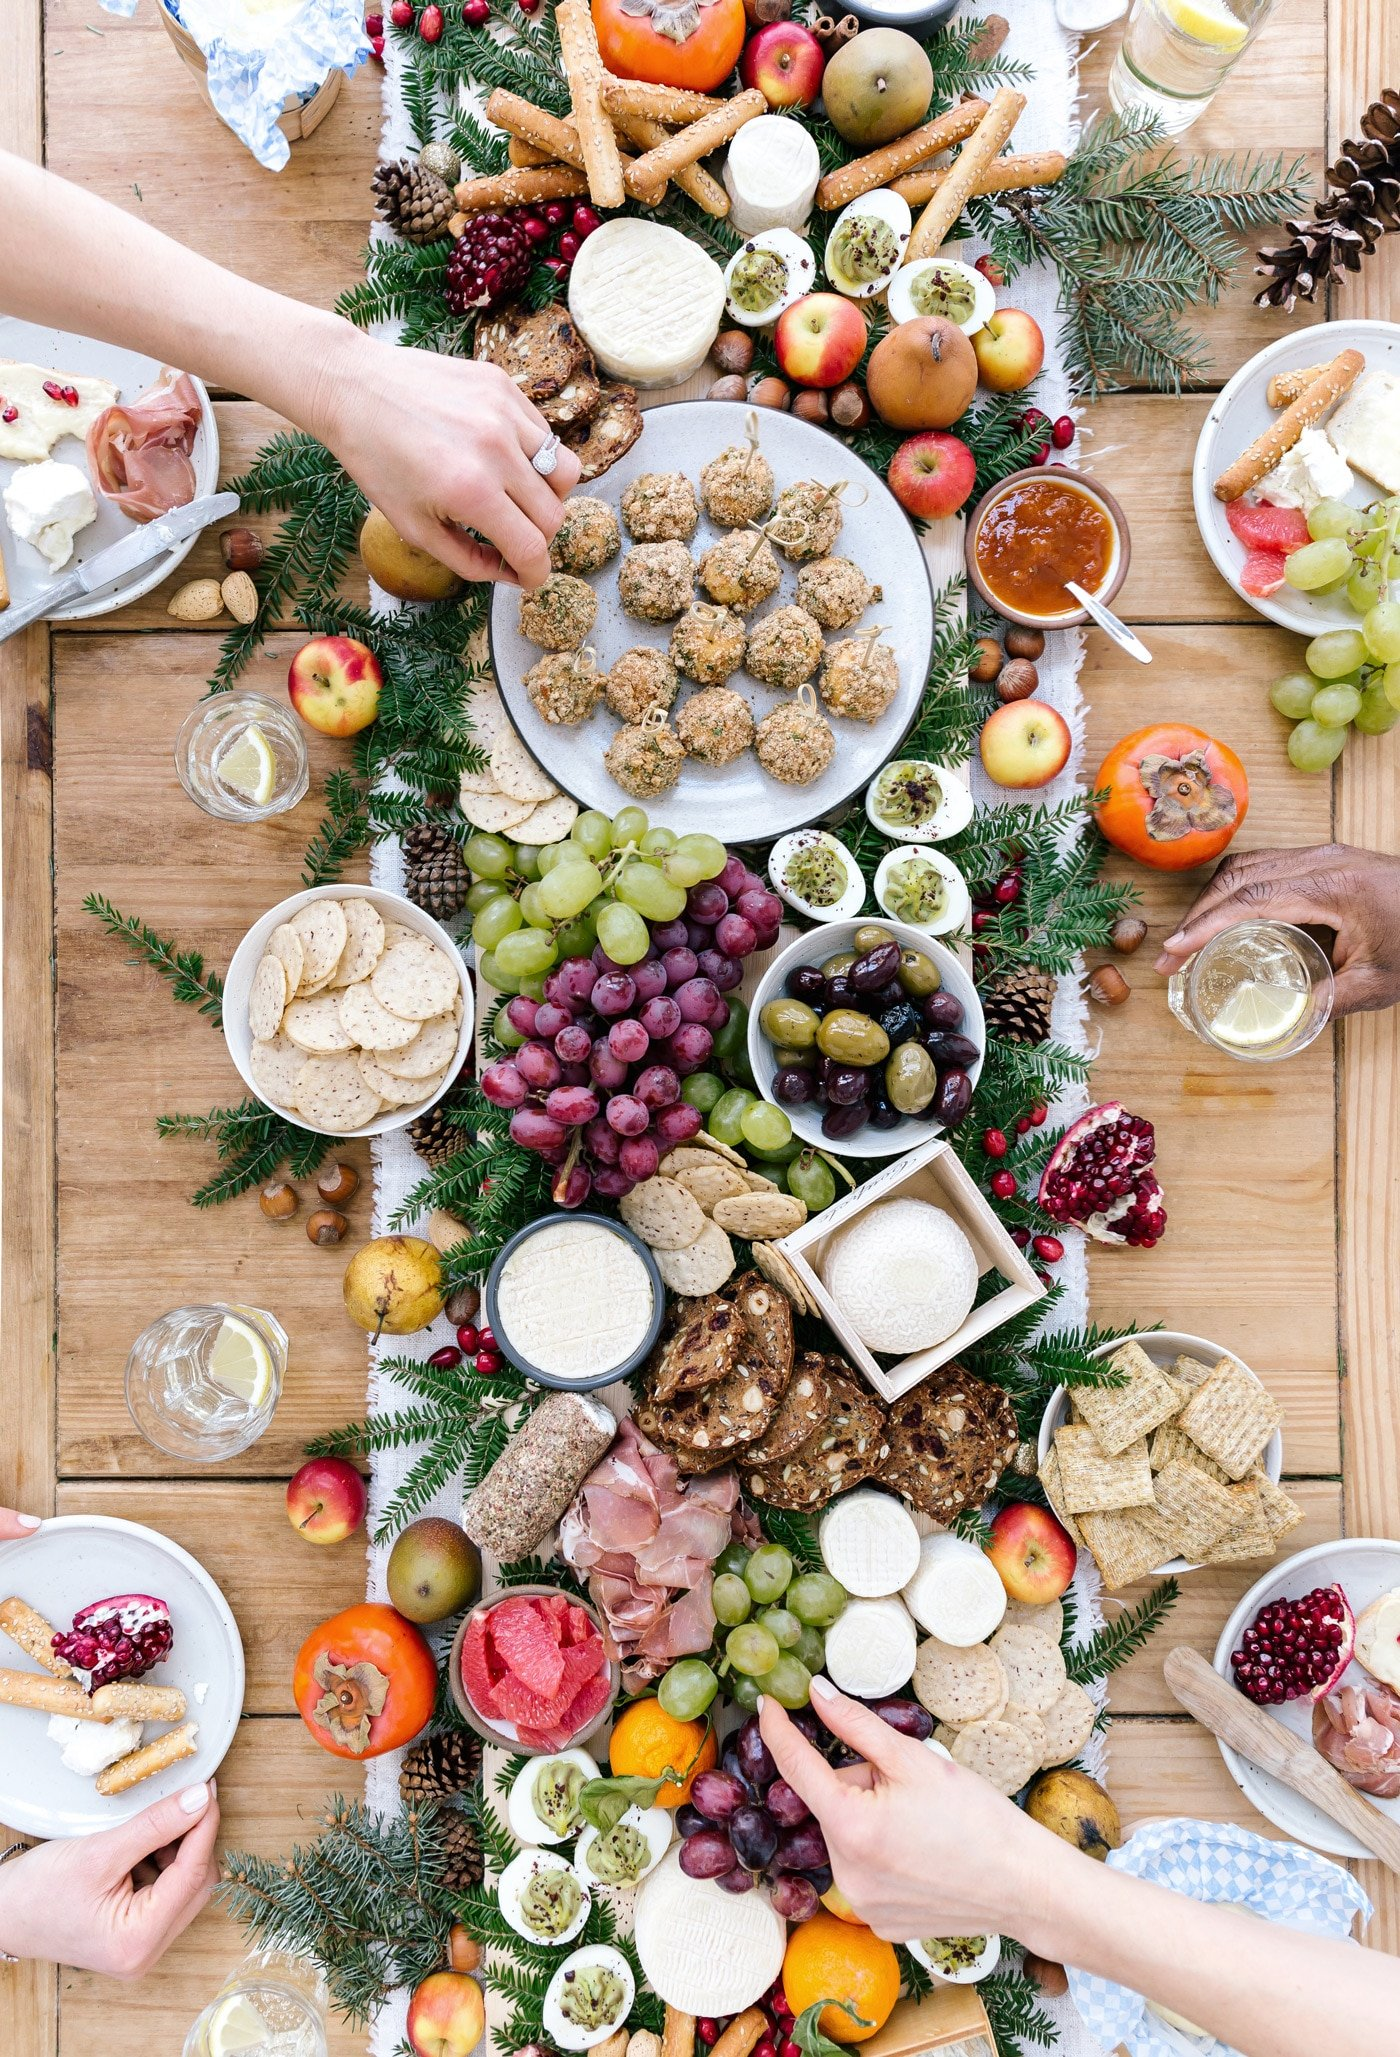 A big table set up cheese, fruit, baked goat cheese balls and people are serving themselves.